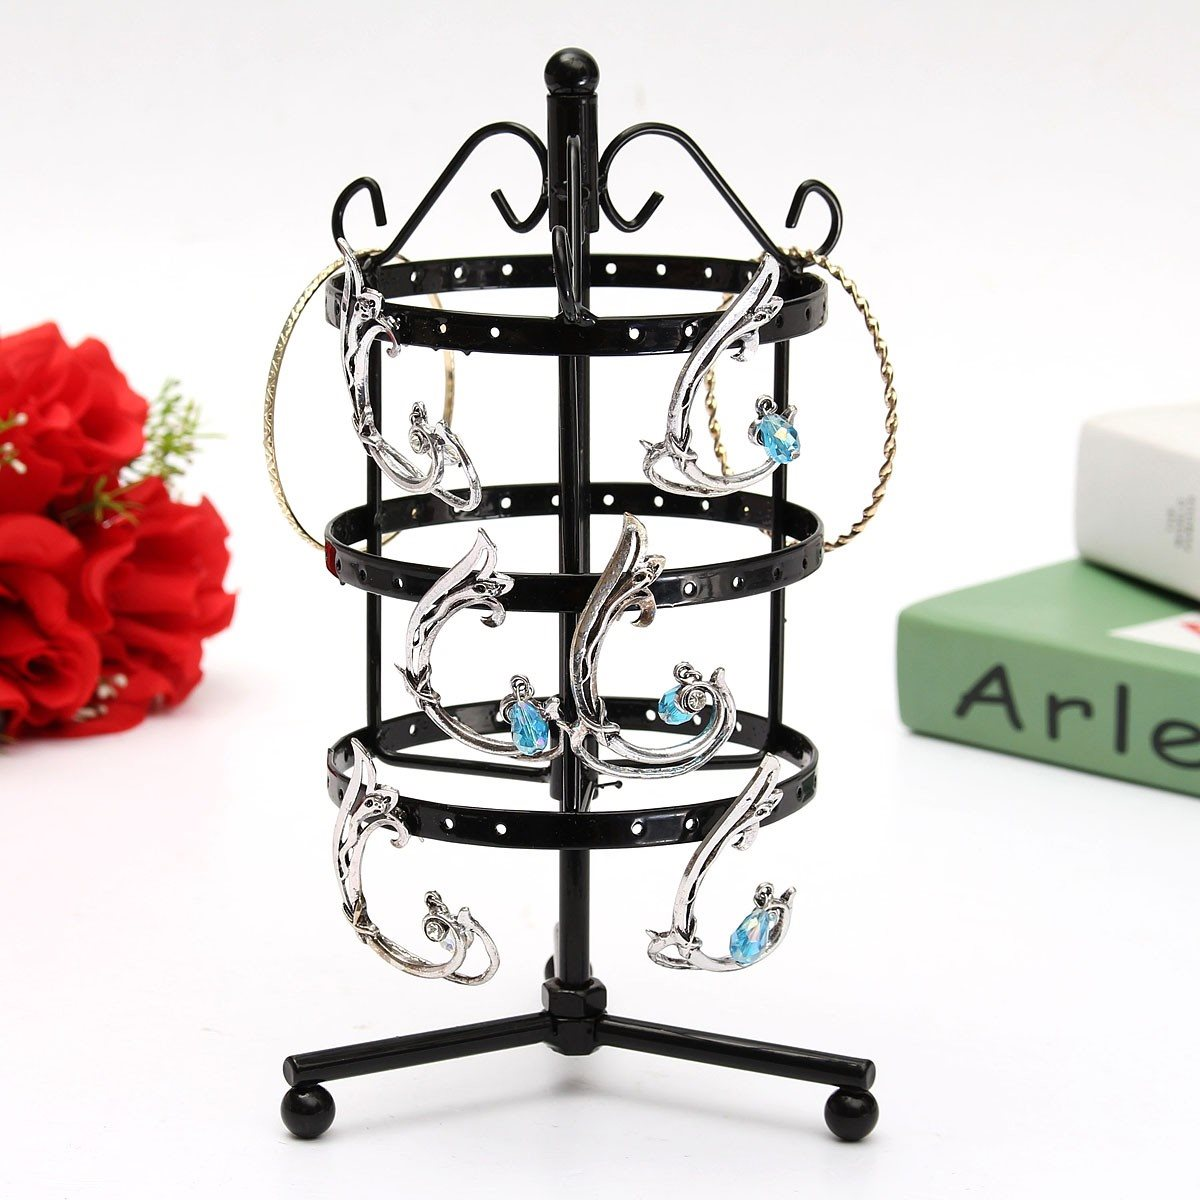 Diy Earring Stand-Buy Cheap Diy Earring Stand lots from China Diy ...